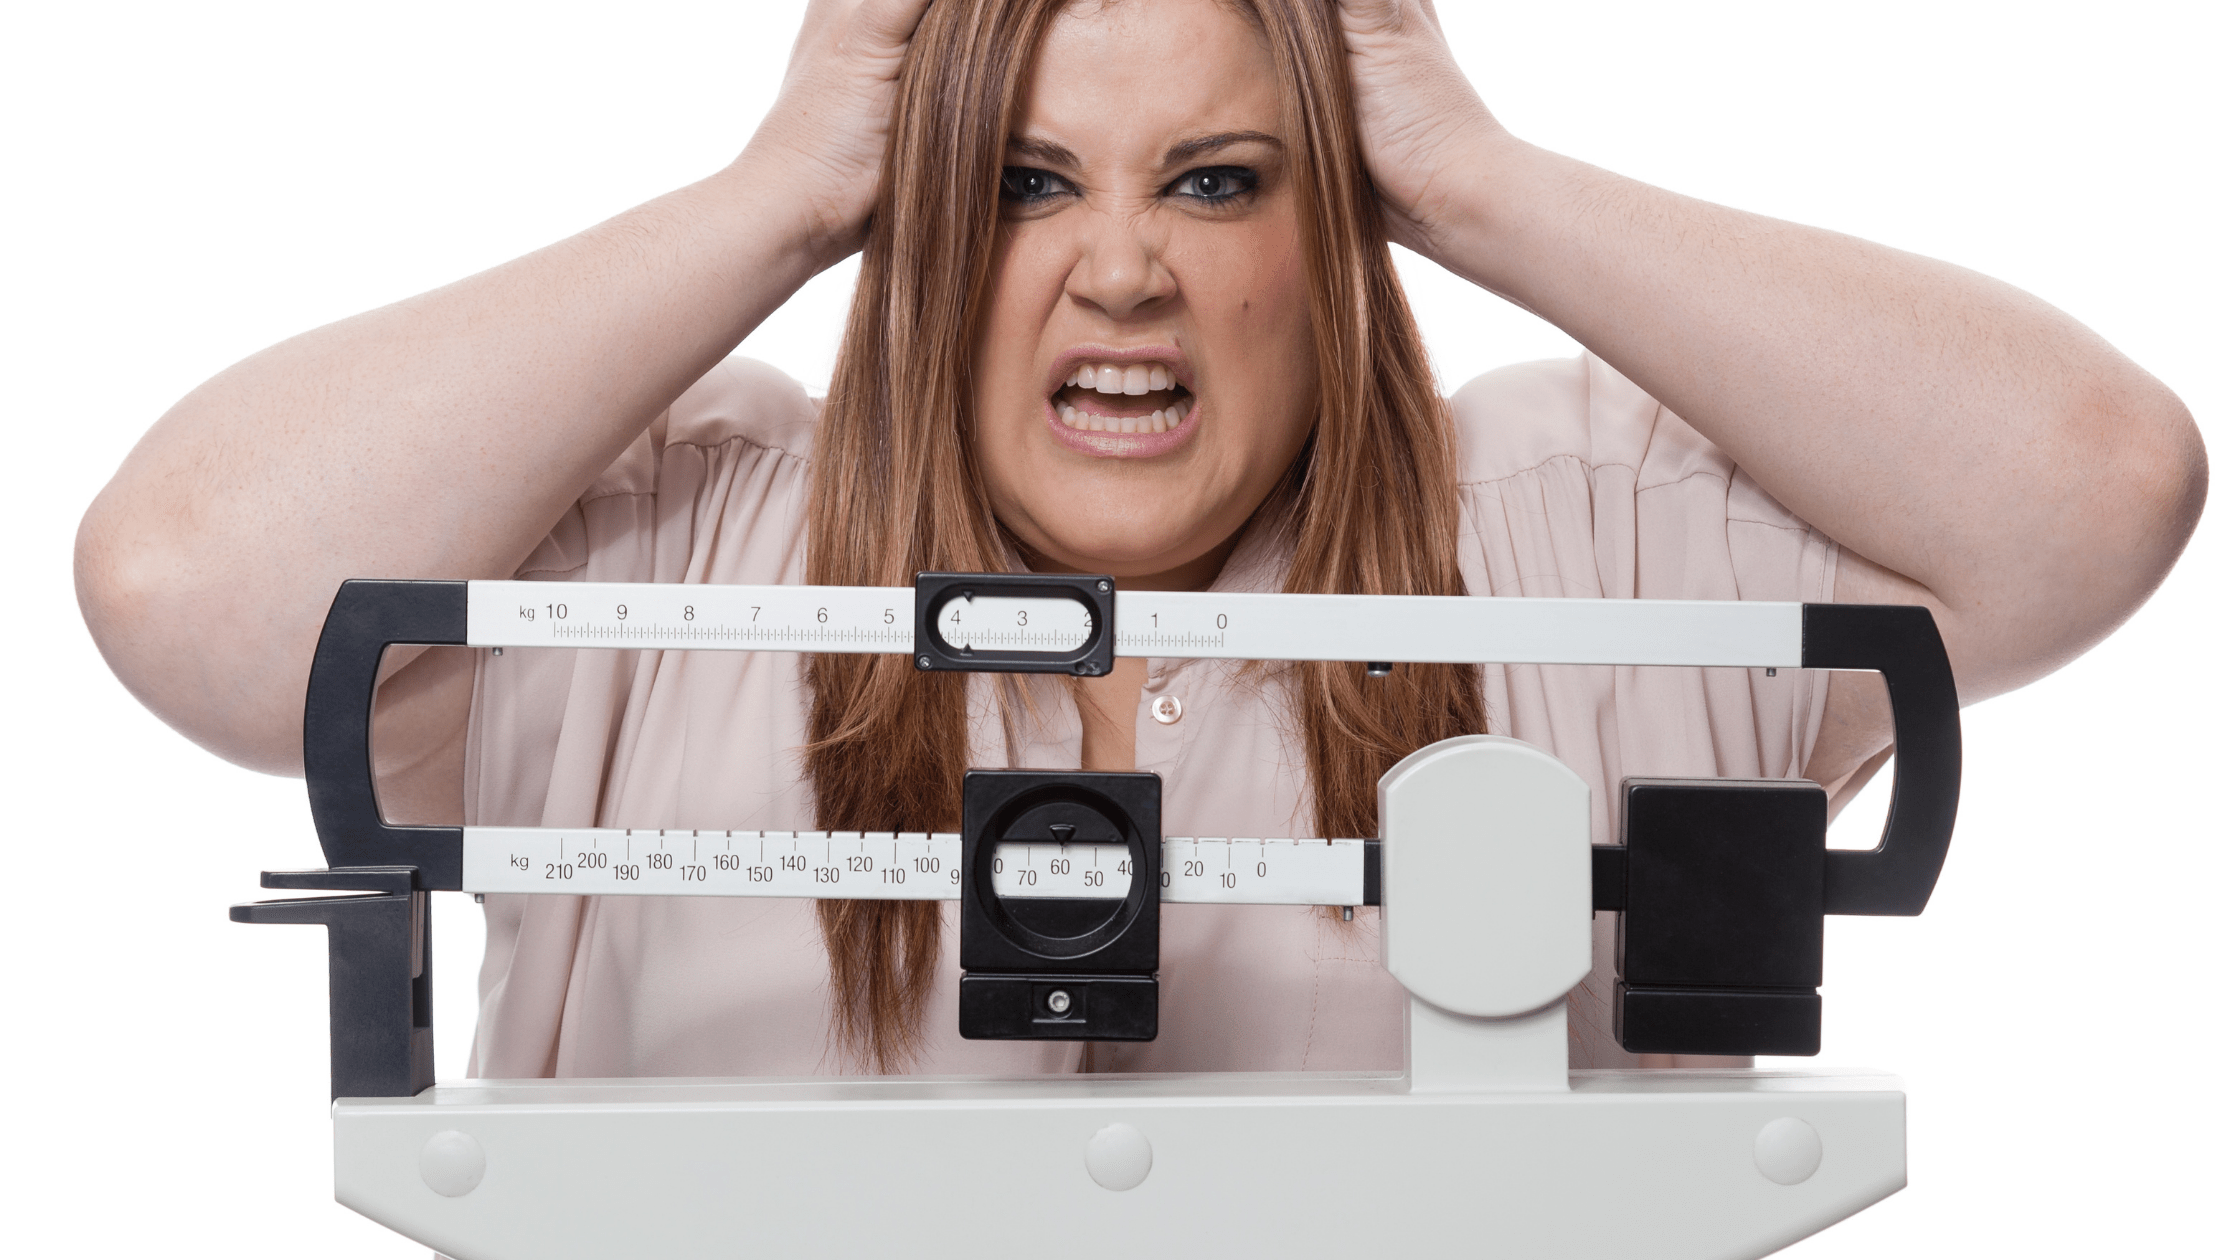 3 simple mistakes you are currently making that are keeping you fat.